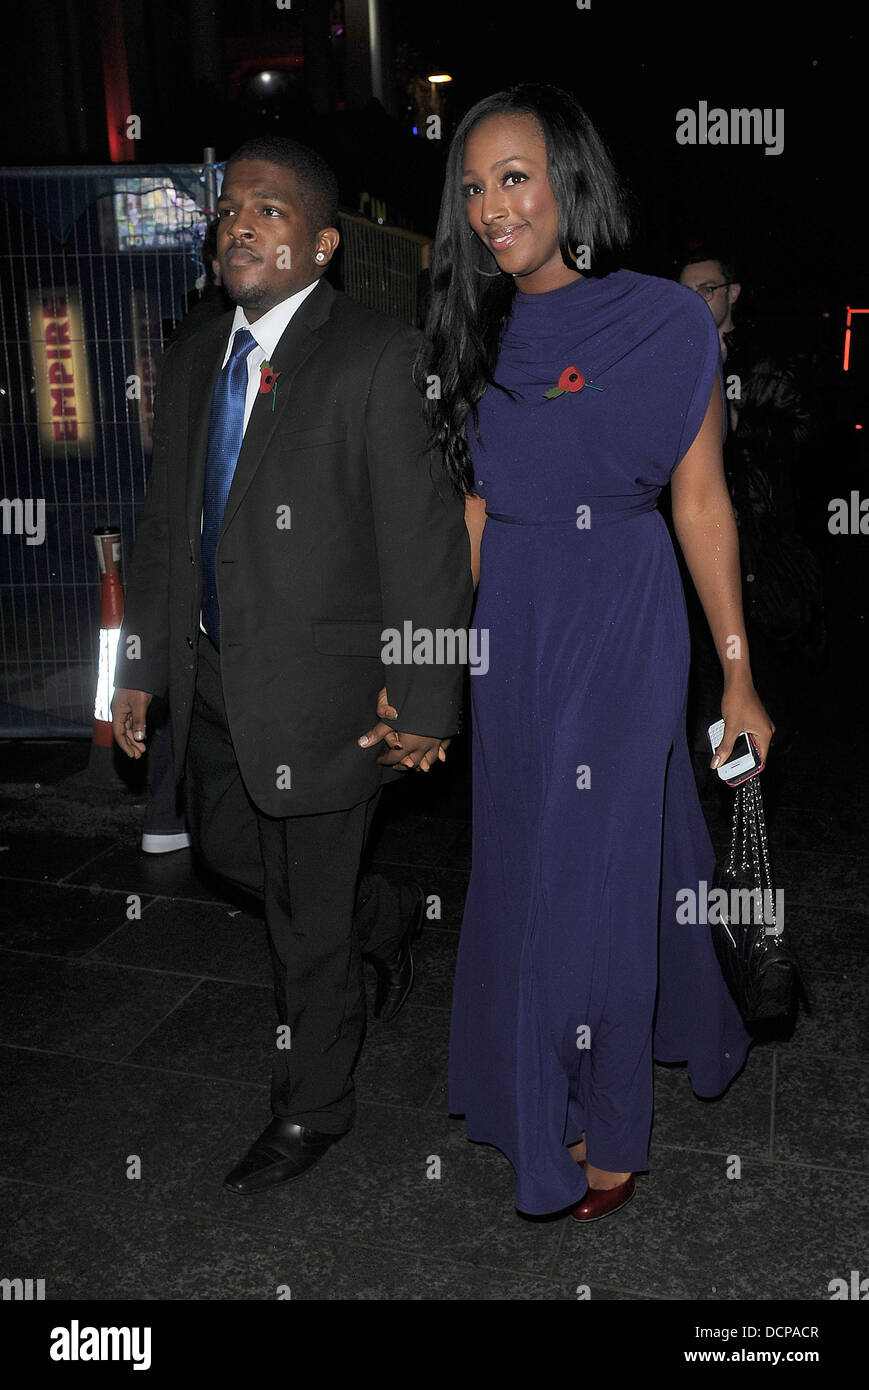 Alexandra Burke Takes Her Younger Brother Aaron To TGI Fridays Restaurant Celebrate His Birthday London England